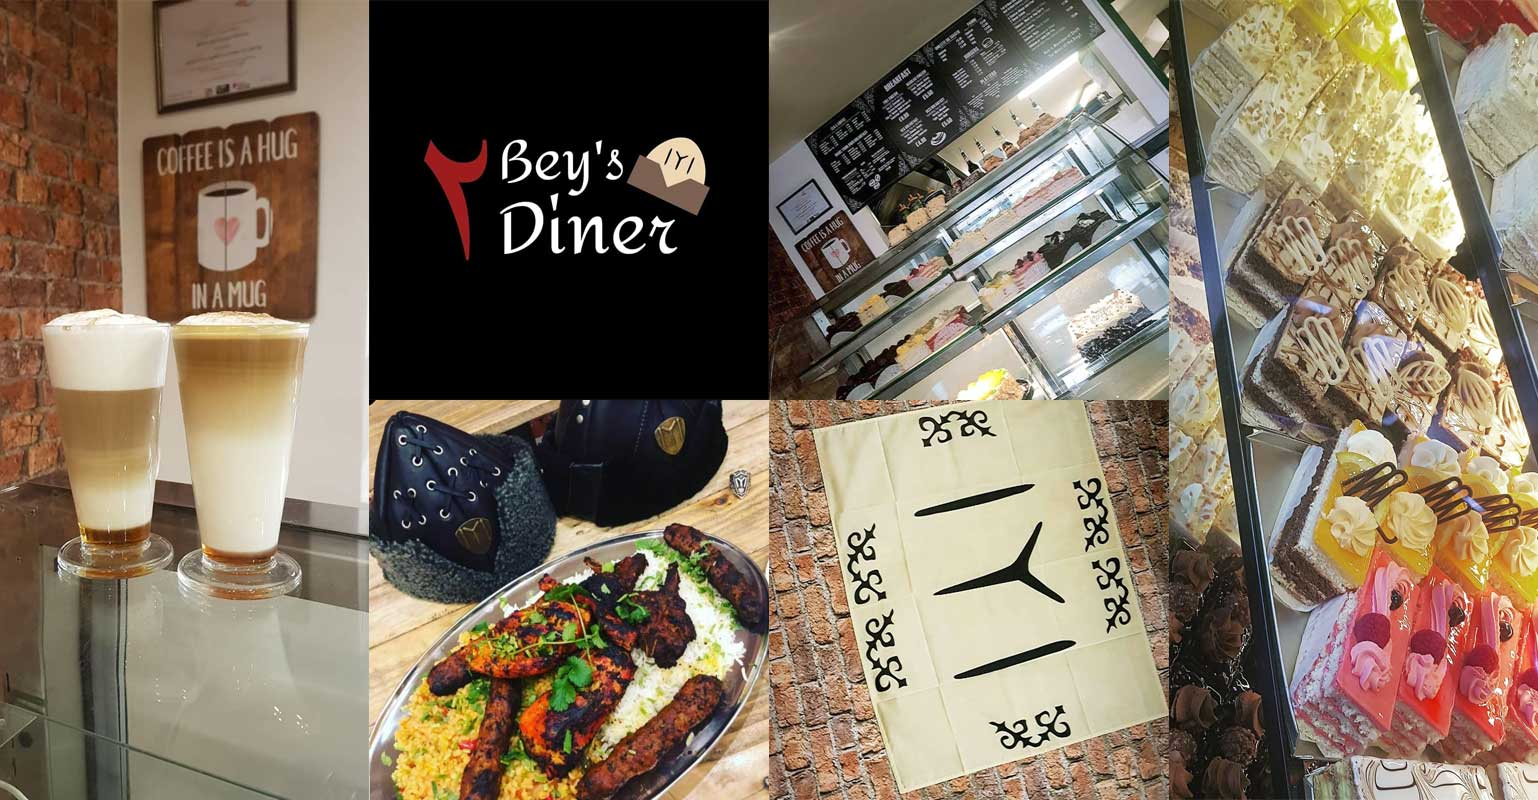 Ertugrul Themed 2 Beys Diner Opens In Birmingham Feed The